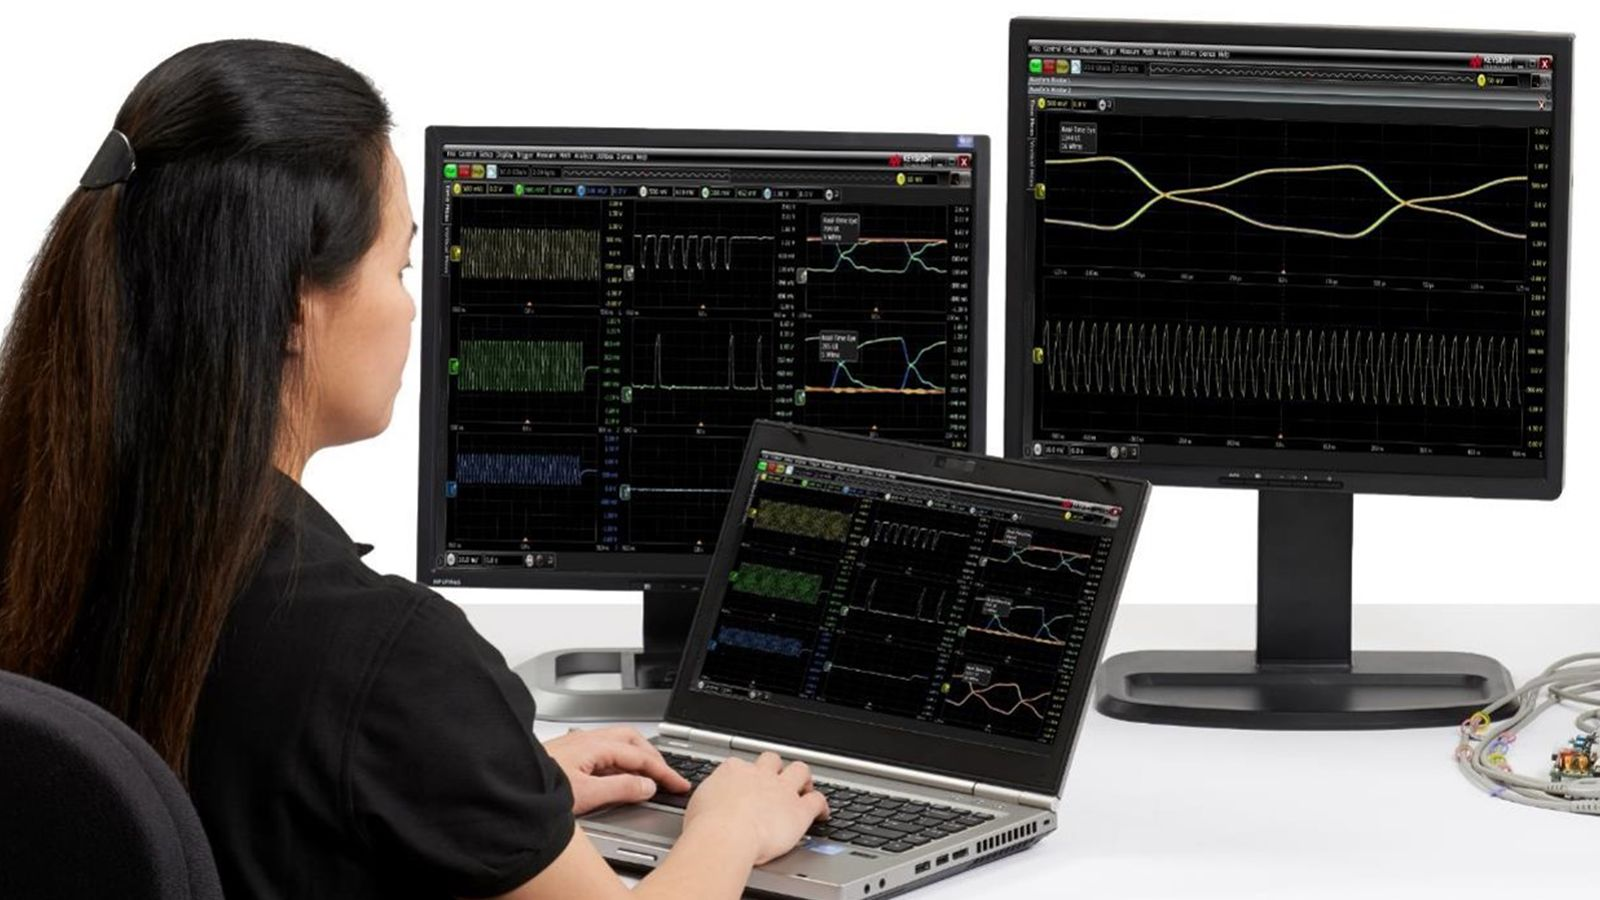 Keysight MXR-Series software applications - signal integrity, power integrity, protocol decode and trigger applications